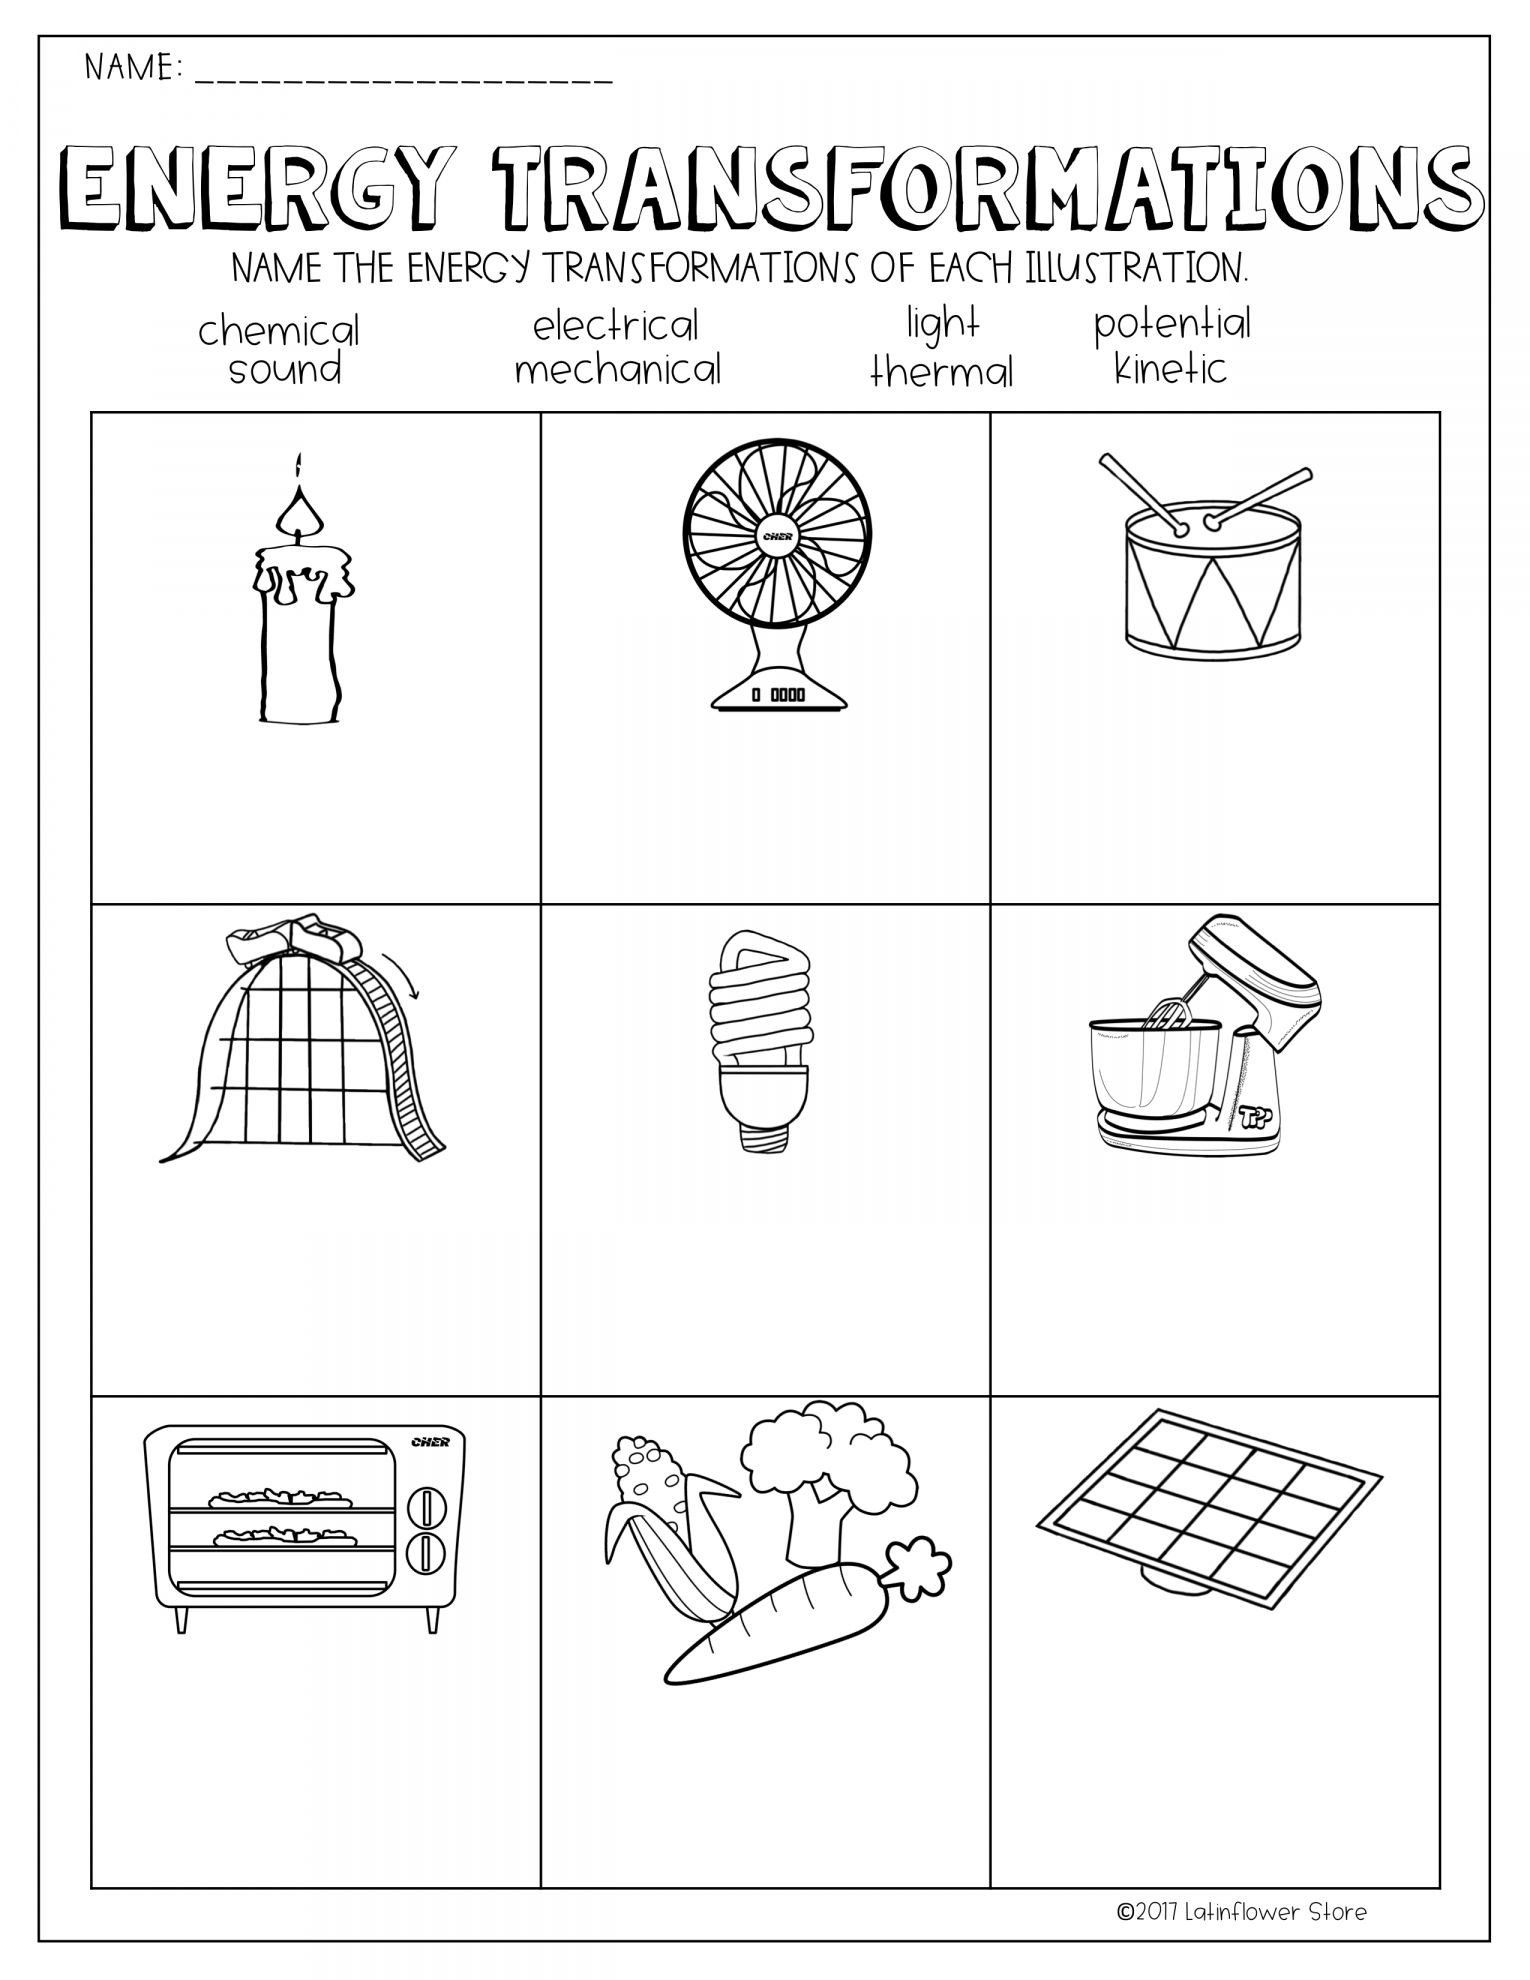 Energy Transformation Worksheets Middle School Pin On Energy Transformations Activities